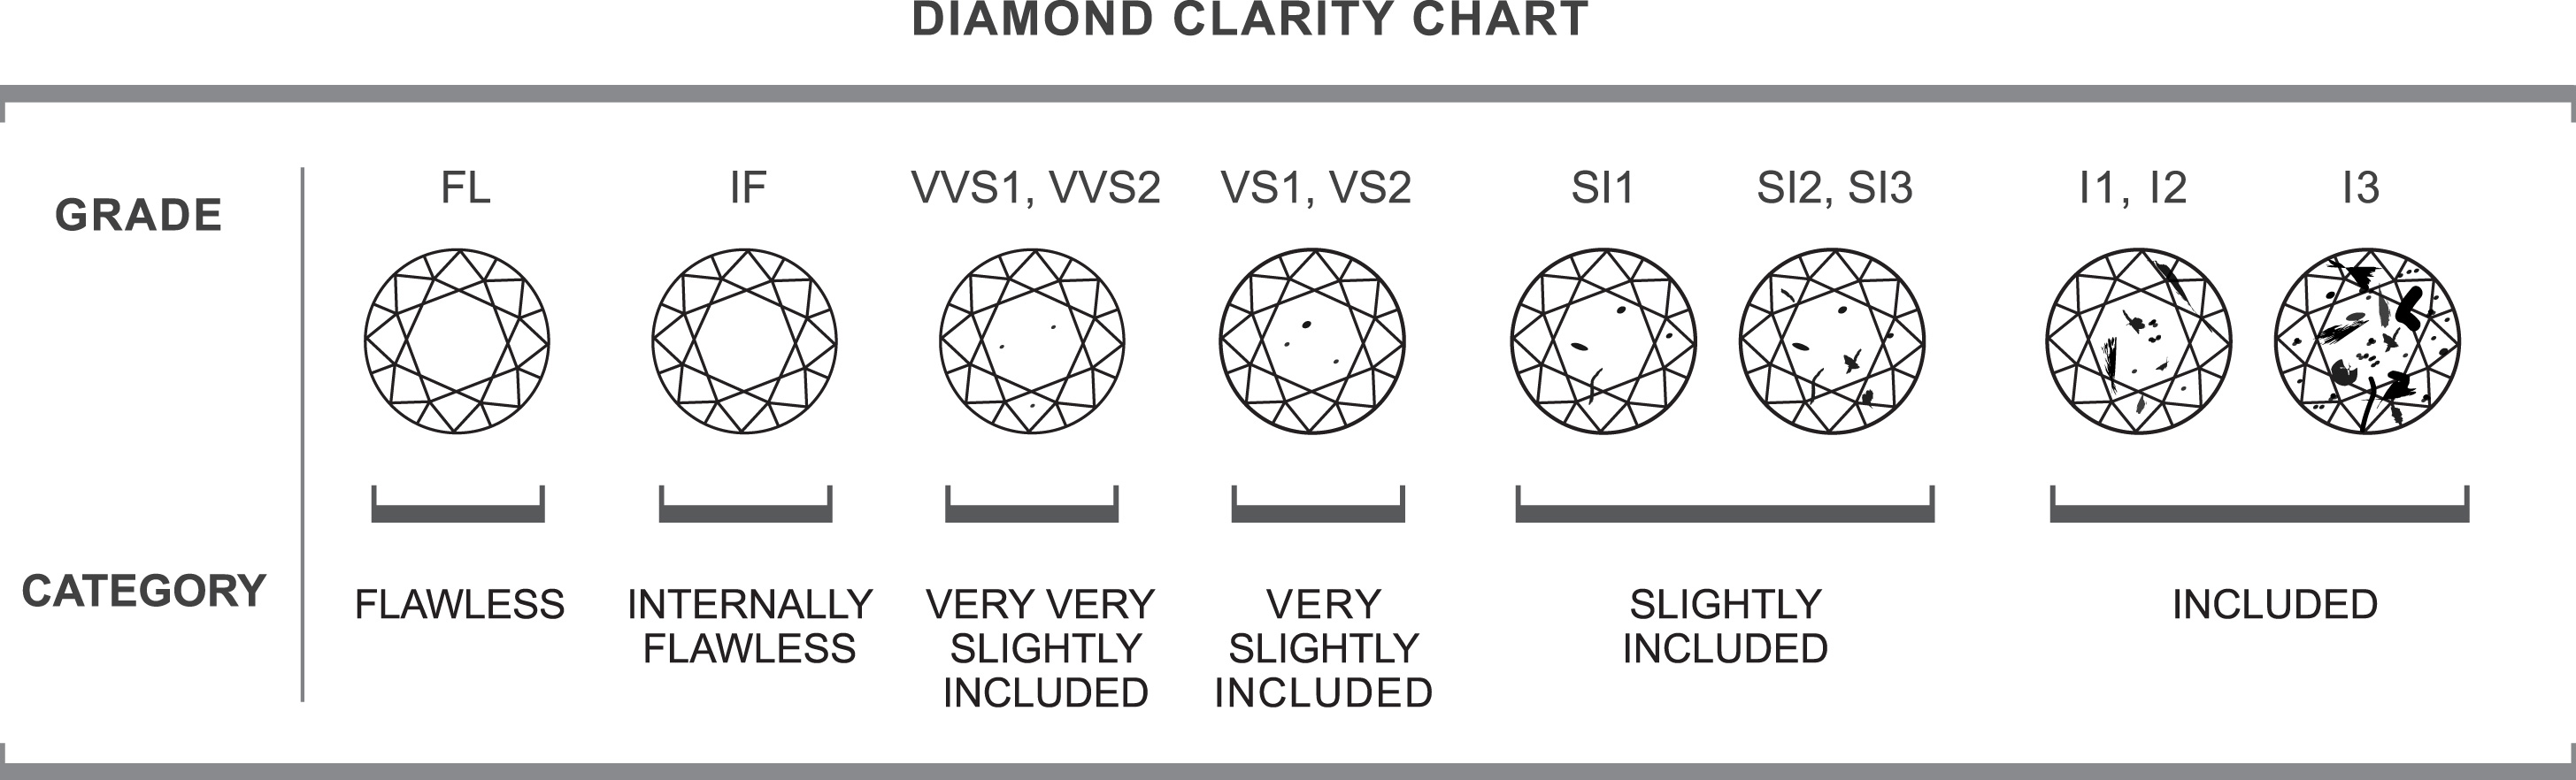 Anthony s jewelers diamond clarity chart